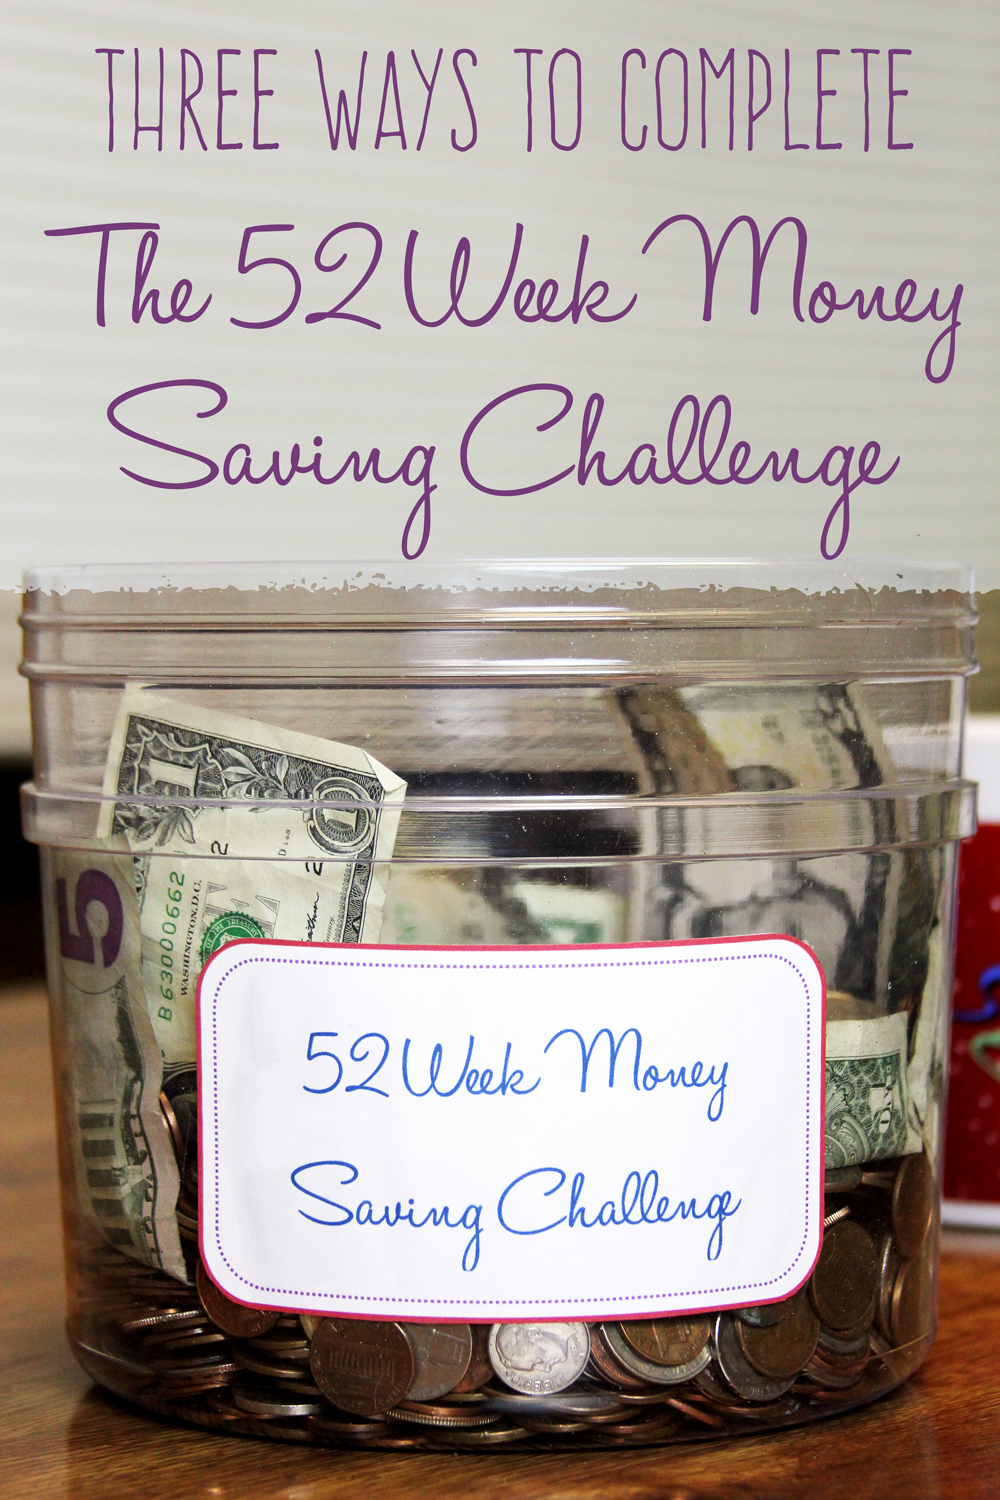 3 Different Ways to Complete the 52-Week Money Saving Challenge